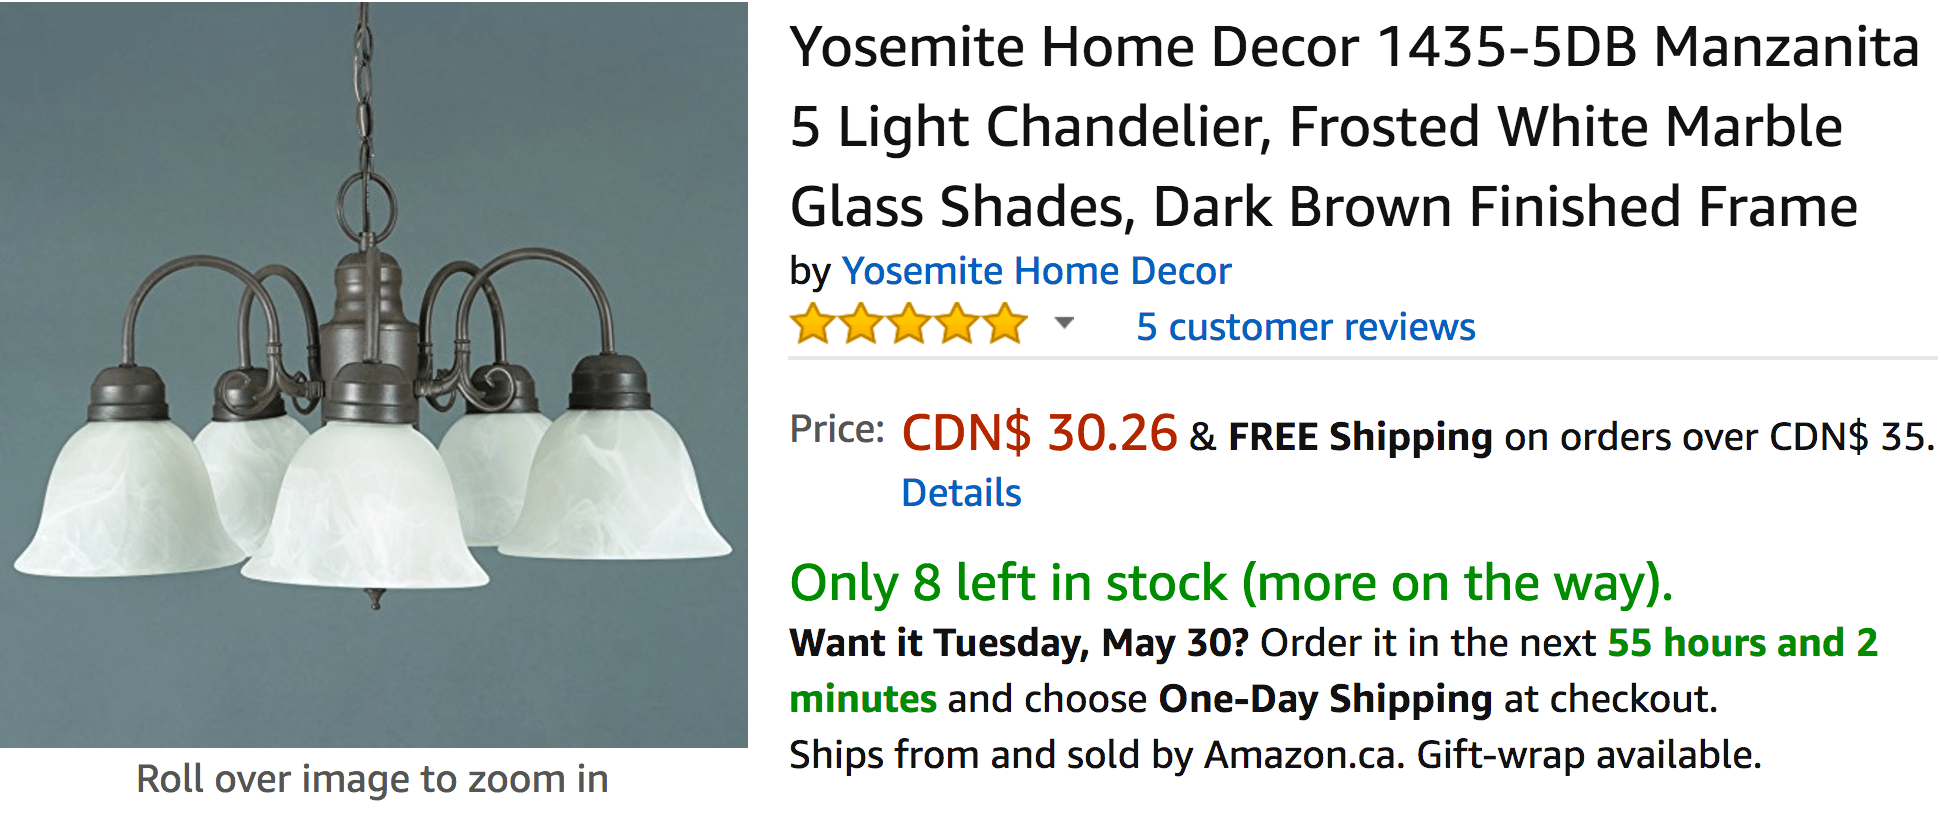 28 just home decor coupon code is mythic paint just a myth just home decor coupon code amazon canada deals save 60 on riverridge home x frame